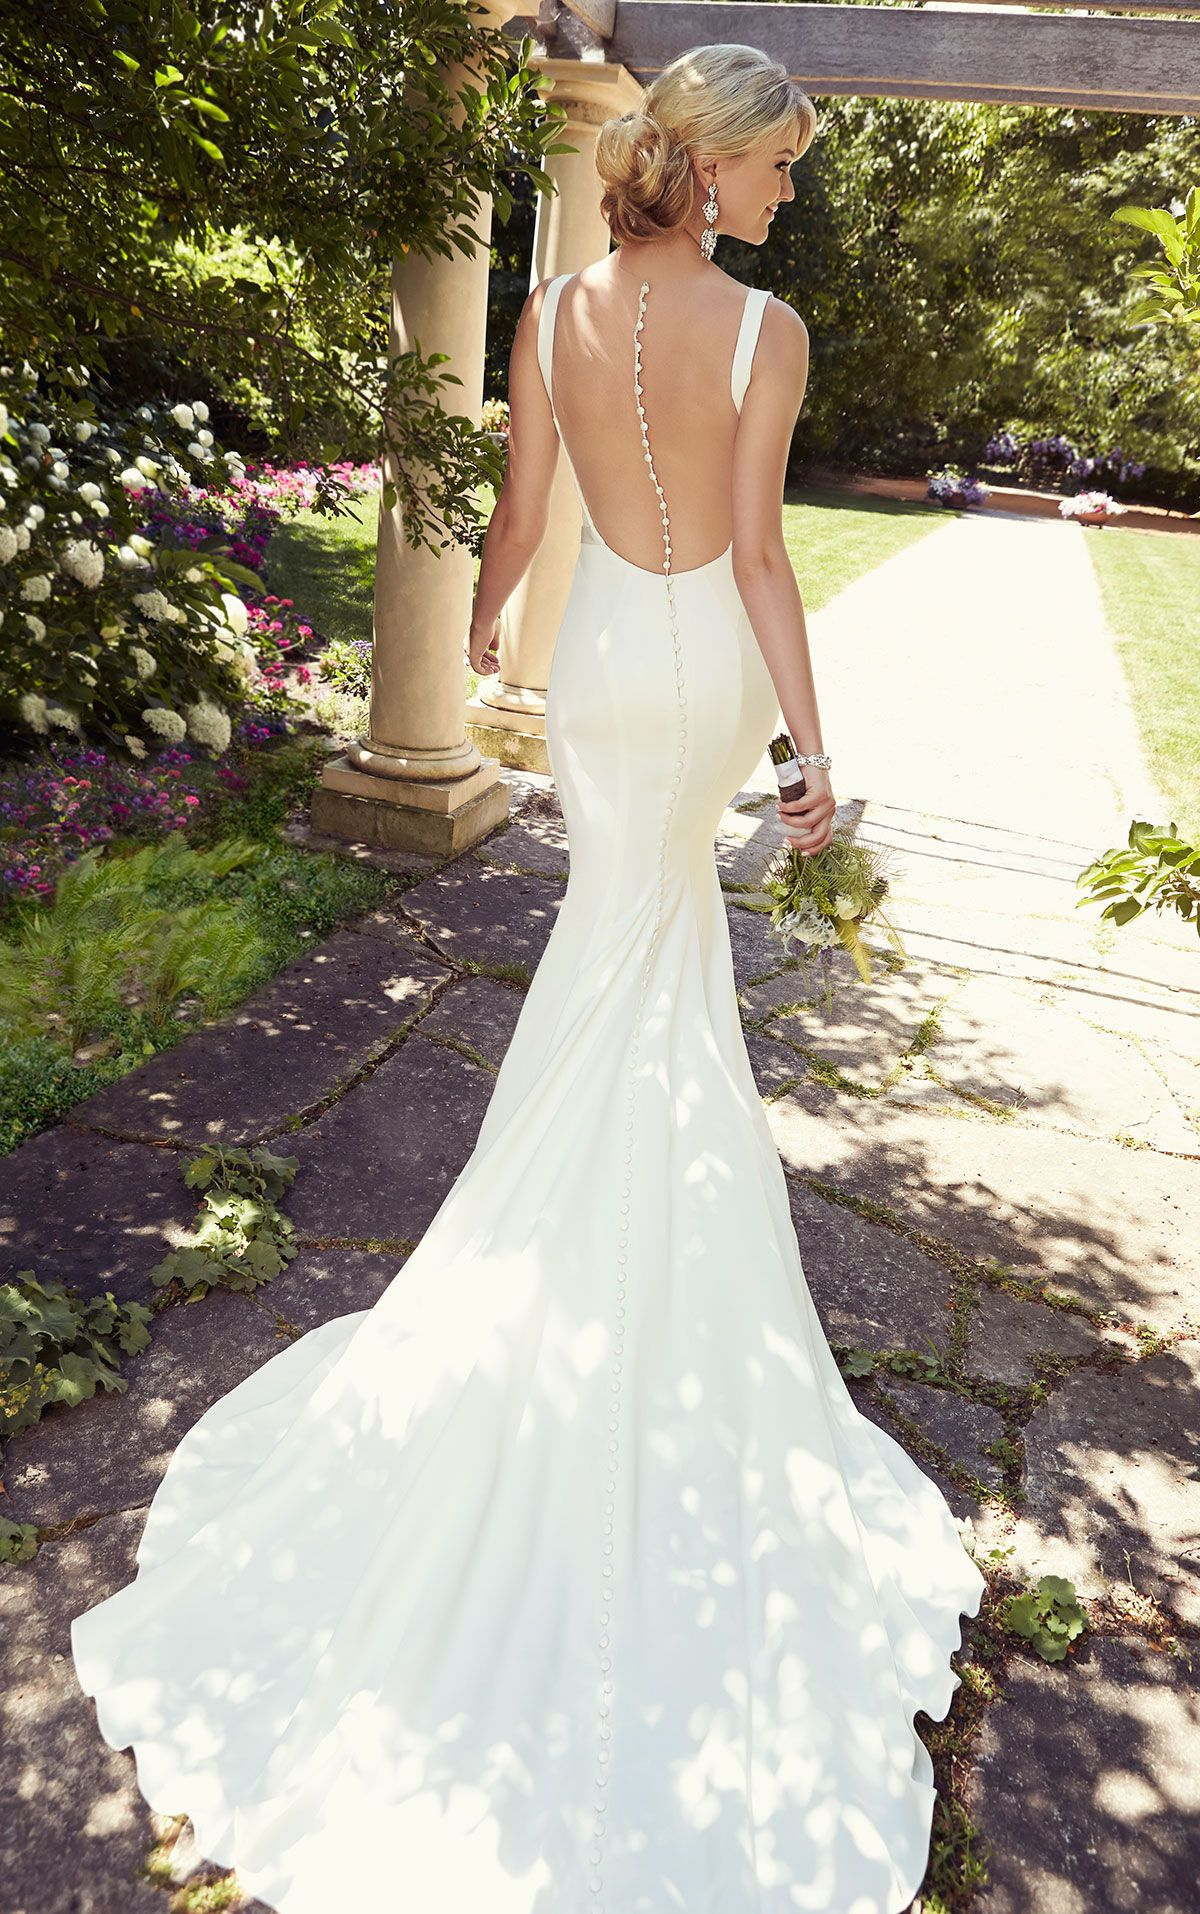 25 backless wedding dresses ideas magic illusions wedding dress 25 backless wedding dresses ideas ombrellifo Image collections